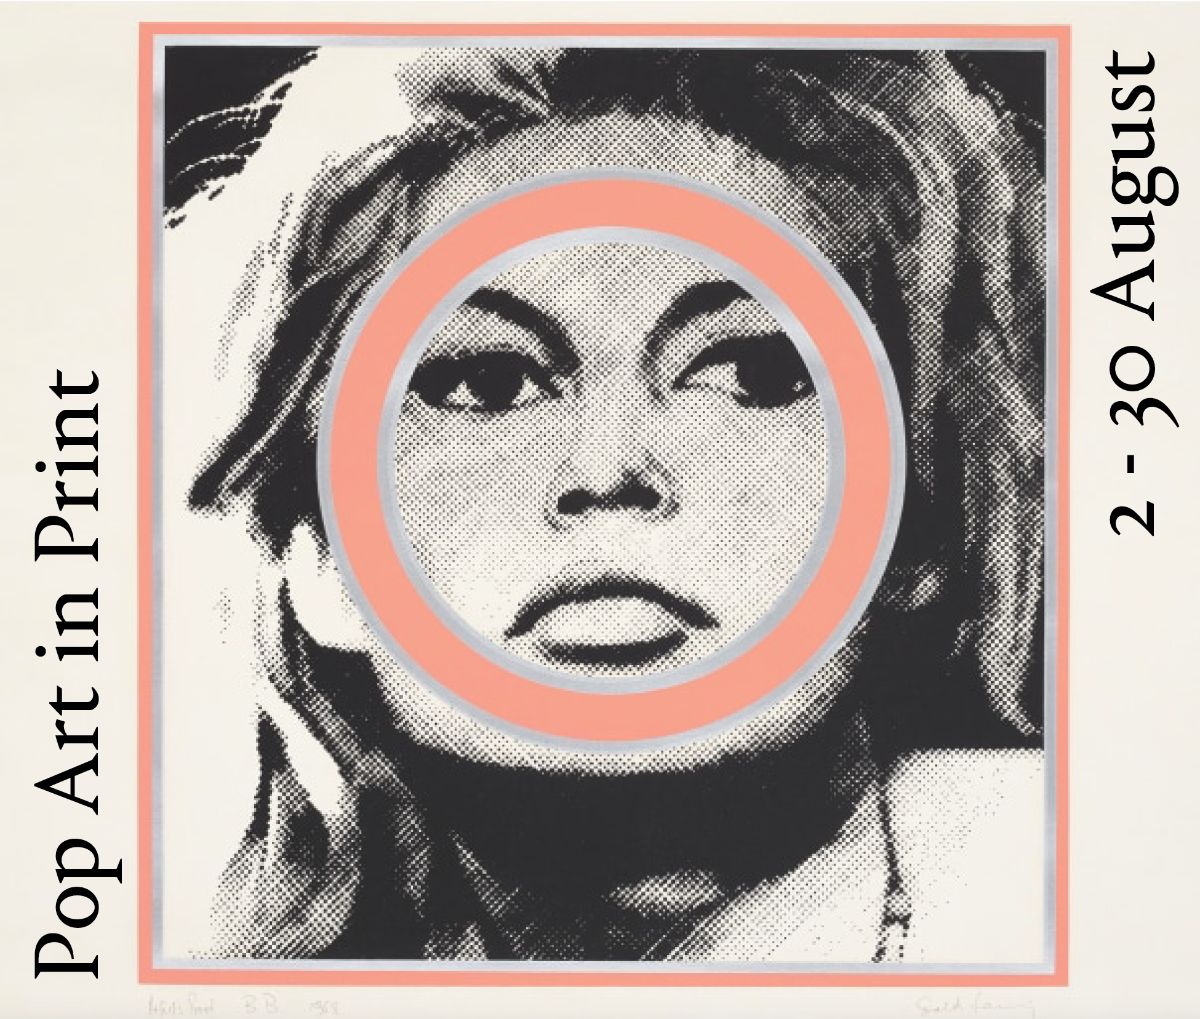 fine art print exhibition announcement featuring andy warhol print at sims reed gallery